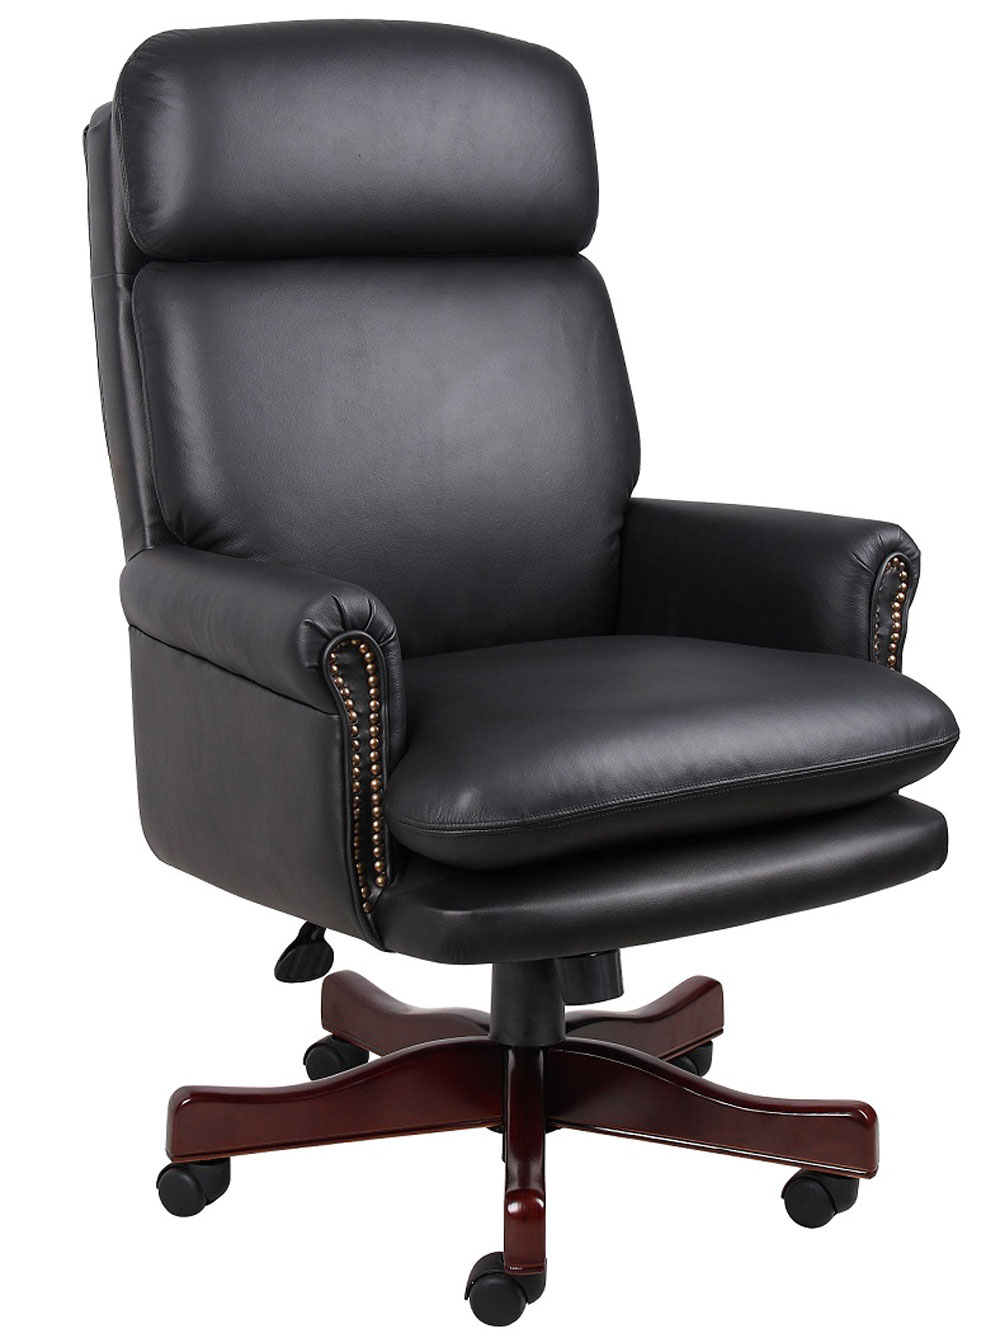 executive office chairs for office. Black Bedroom Furniture Sets. Home Design Ideas